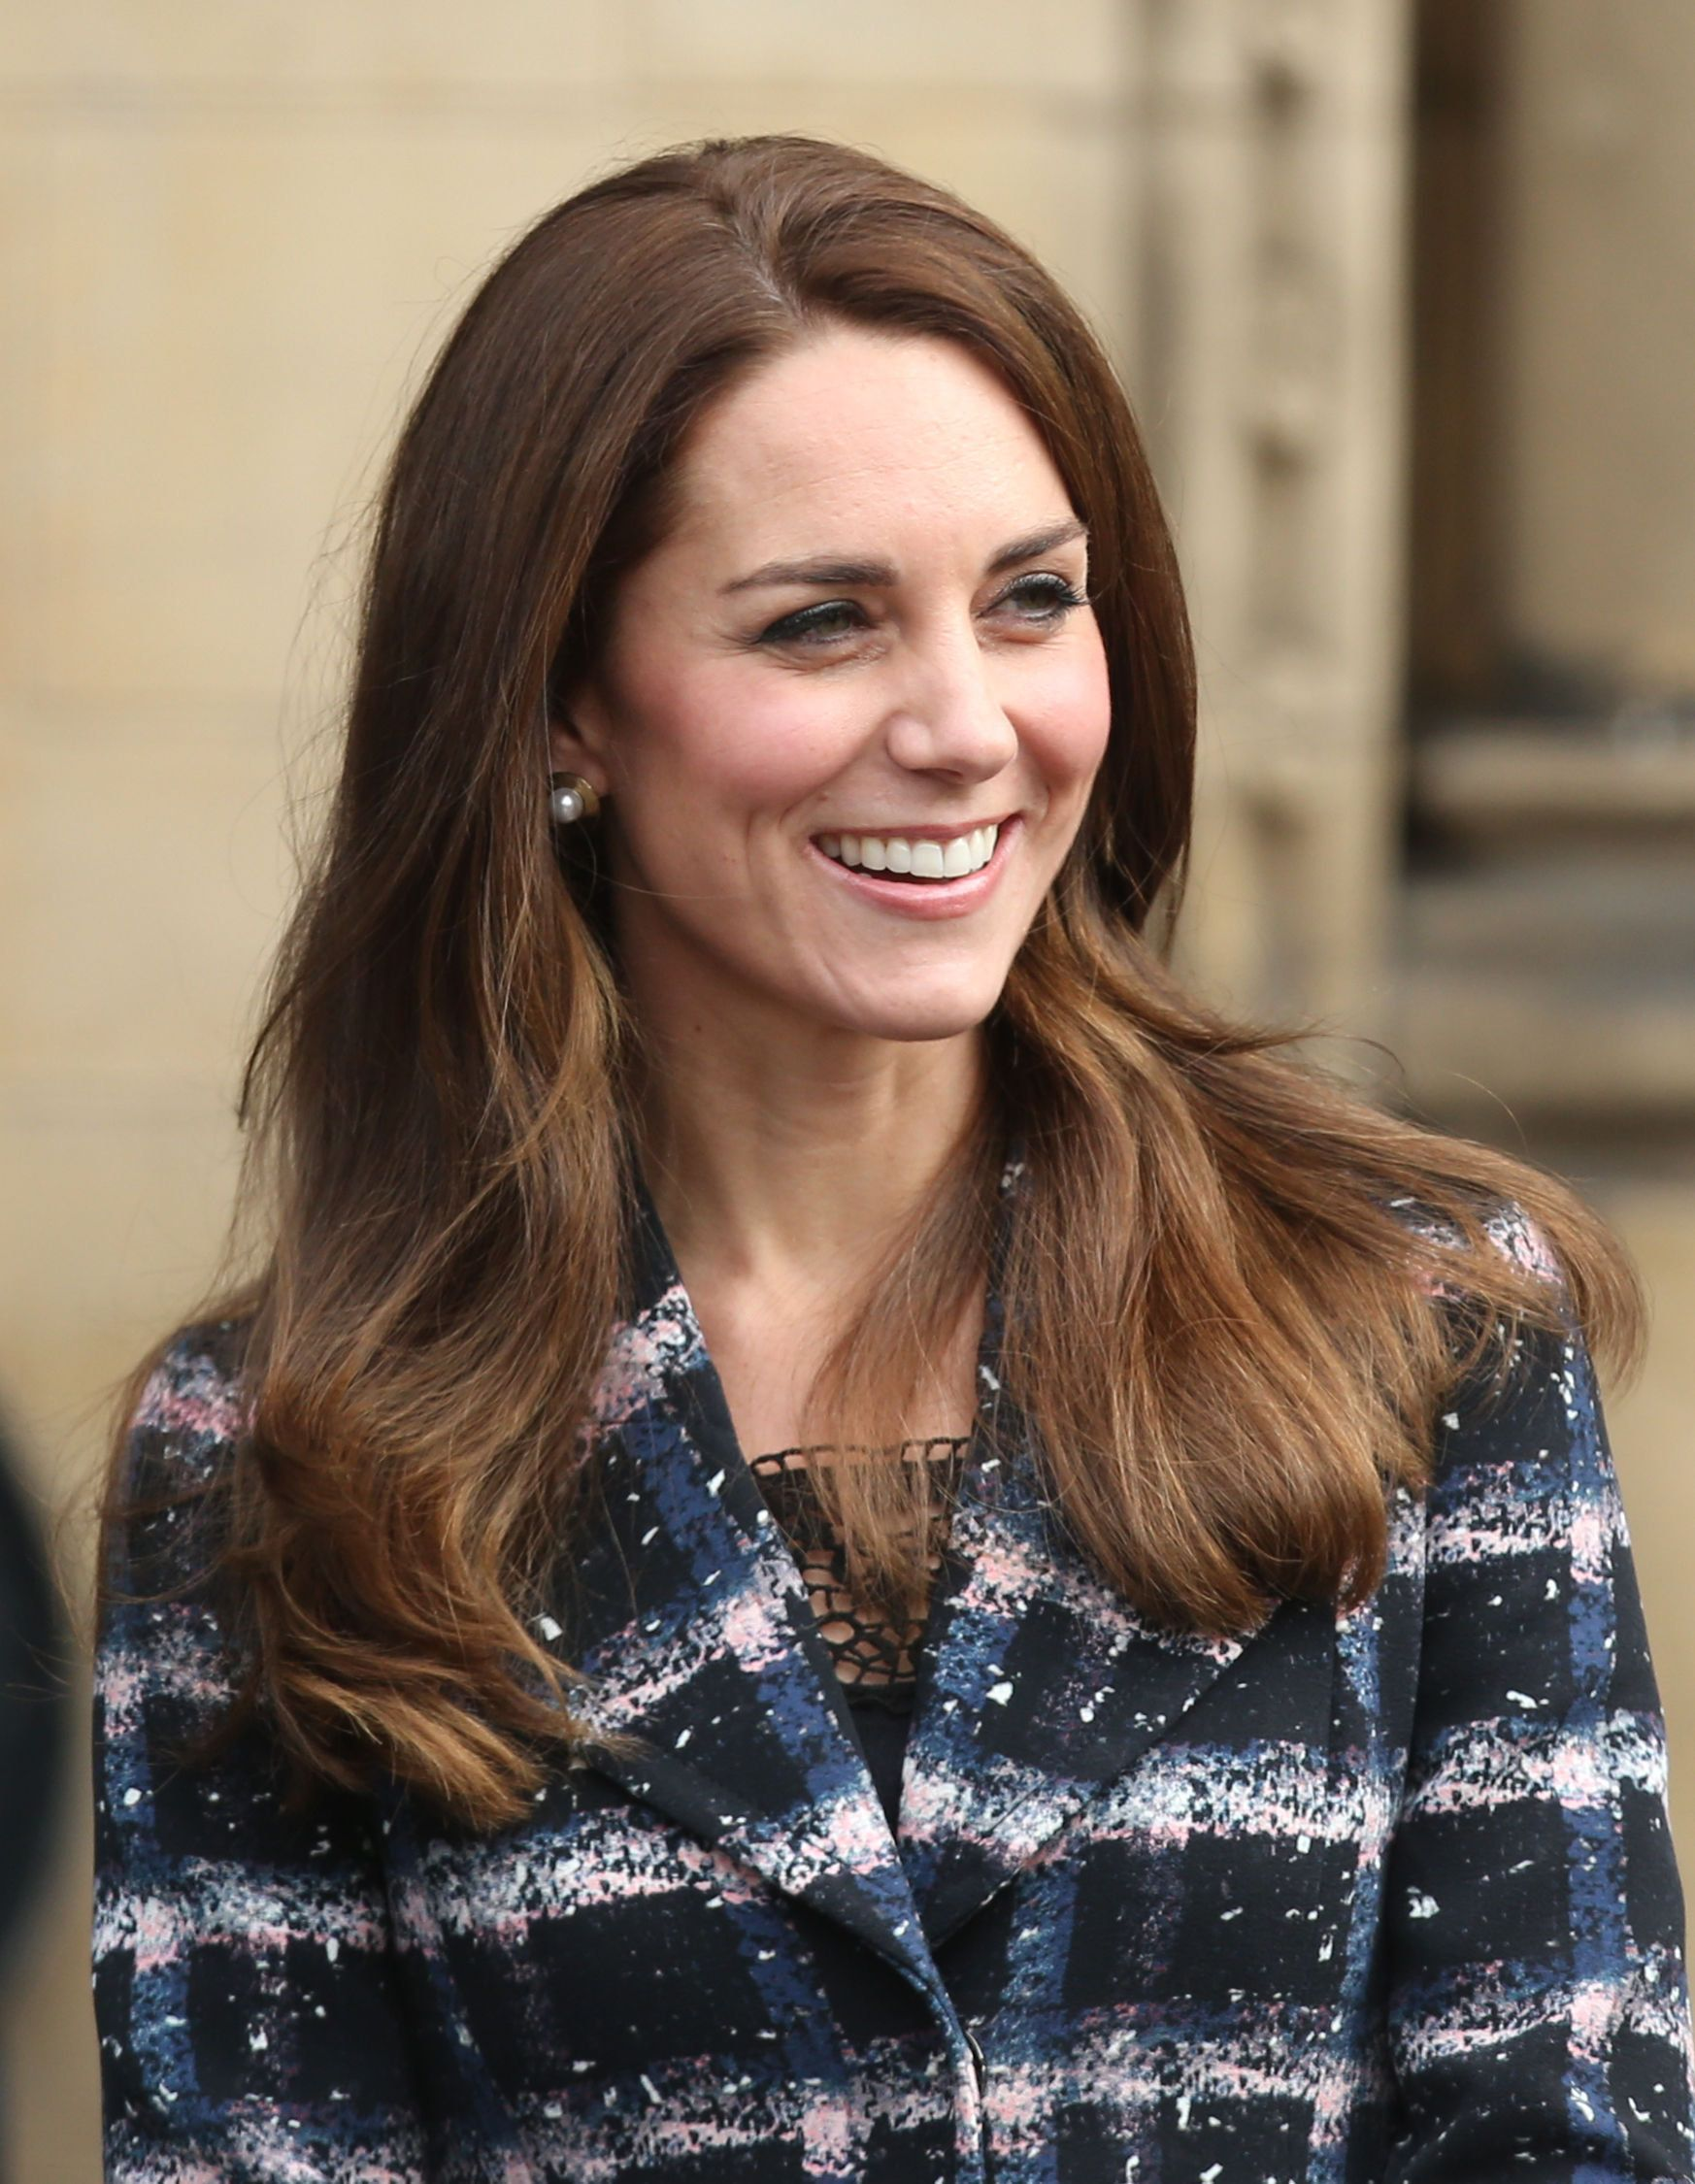 Duchess of Cambridge Kate Middleton has opened up about her late grandmother's work cracking enemy codes...